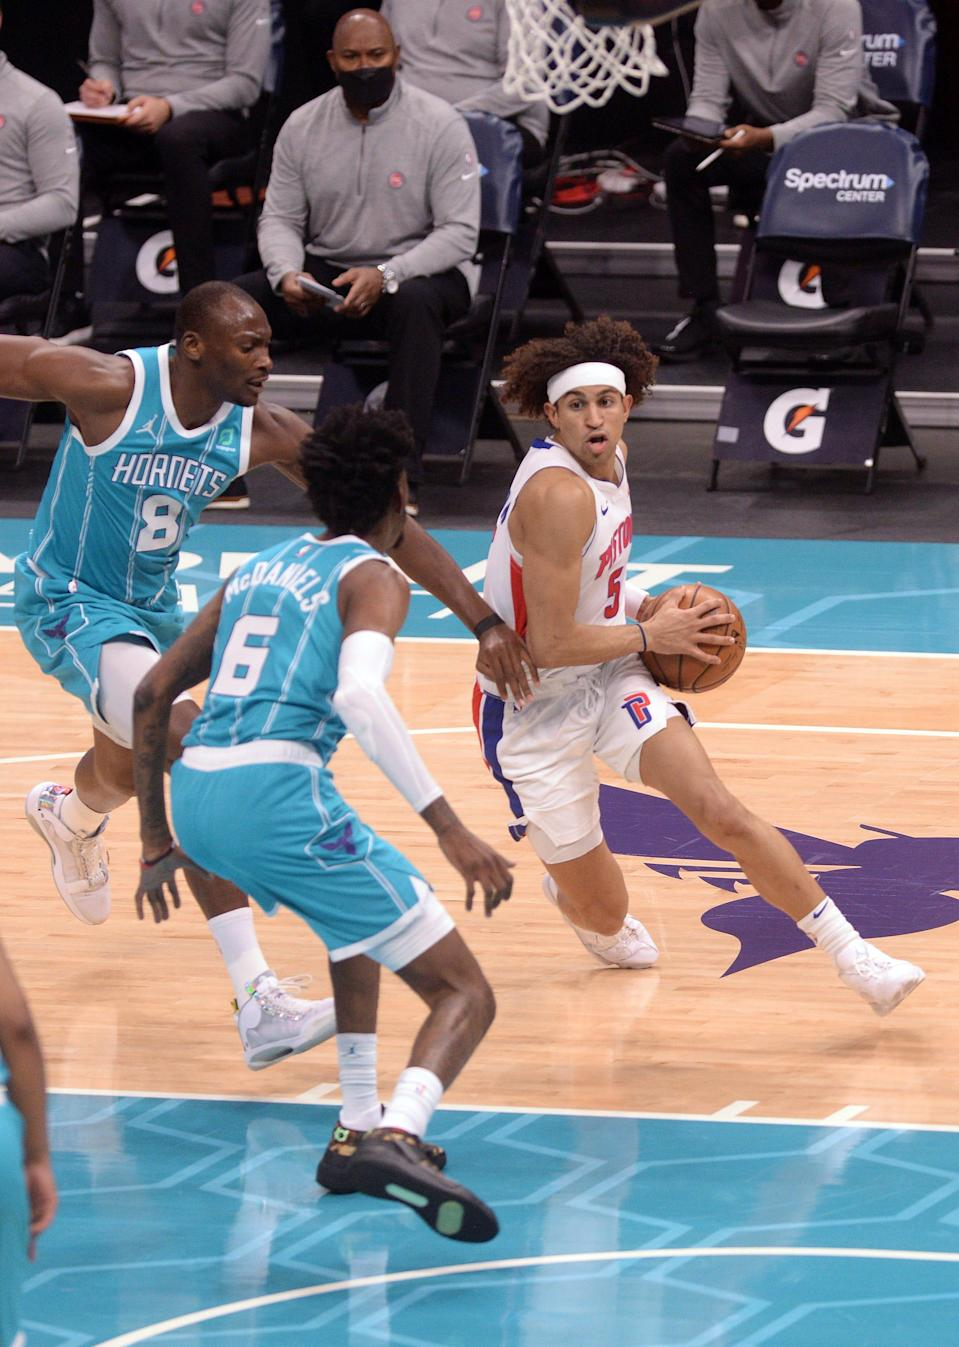 Detroit Pistons guard Frank Jackson (5) drives against Charlotte Hornets center Bismack Biyombo (8) and forward Jalen McDaniels (6) during the first half on May 1, 2021 at the Spectrum Center.